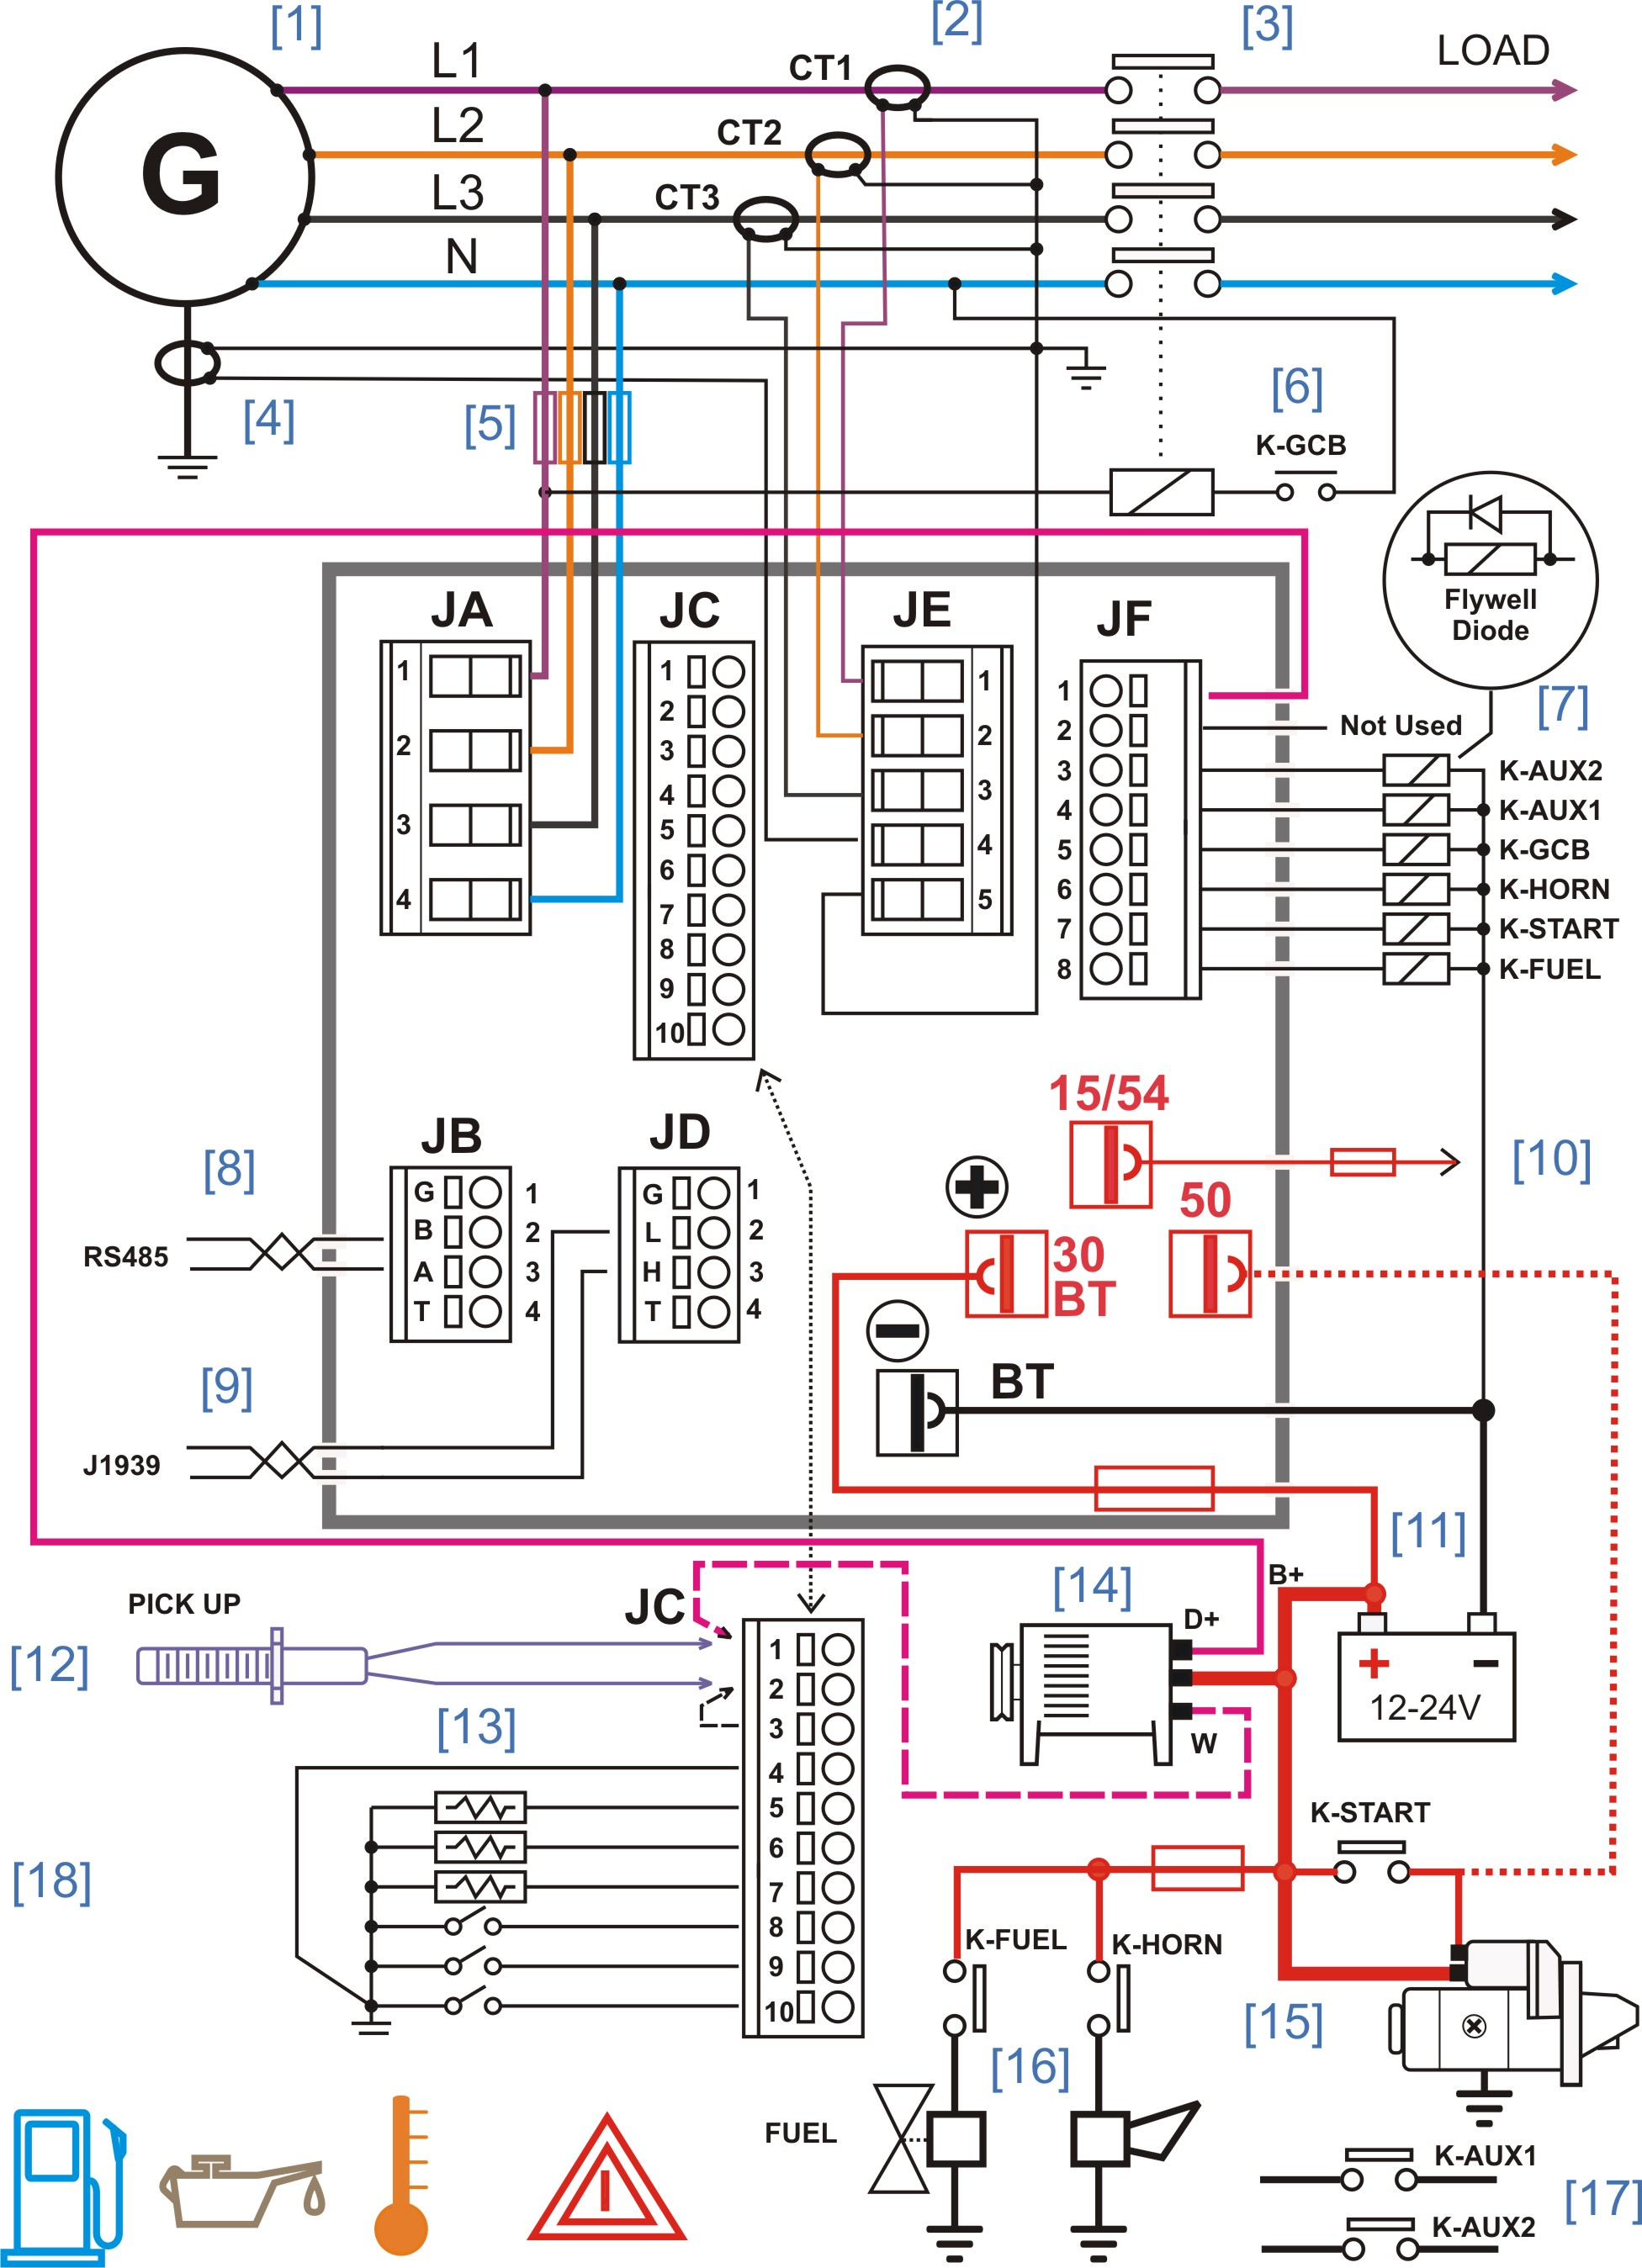 Diesel generator control panel wiring diagram genset controller diesel generator control panel wiring diagram connections asfbconference2016 Image collections